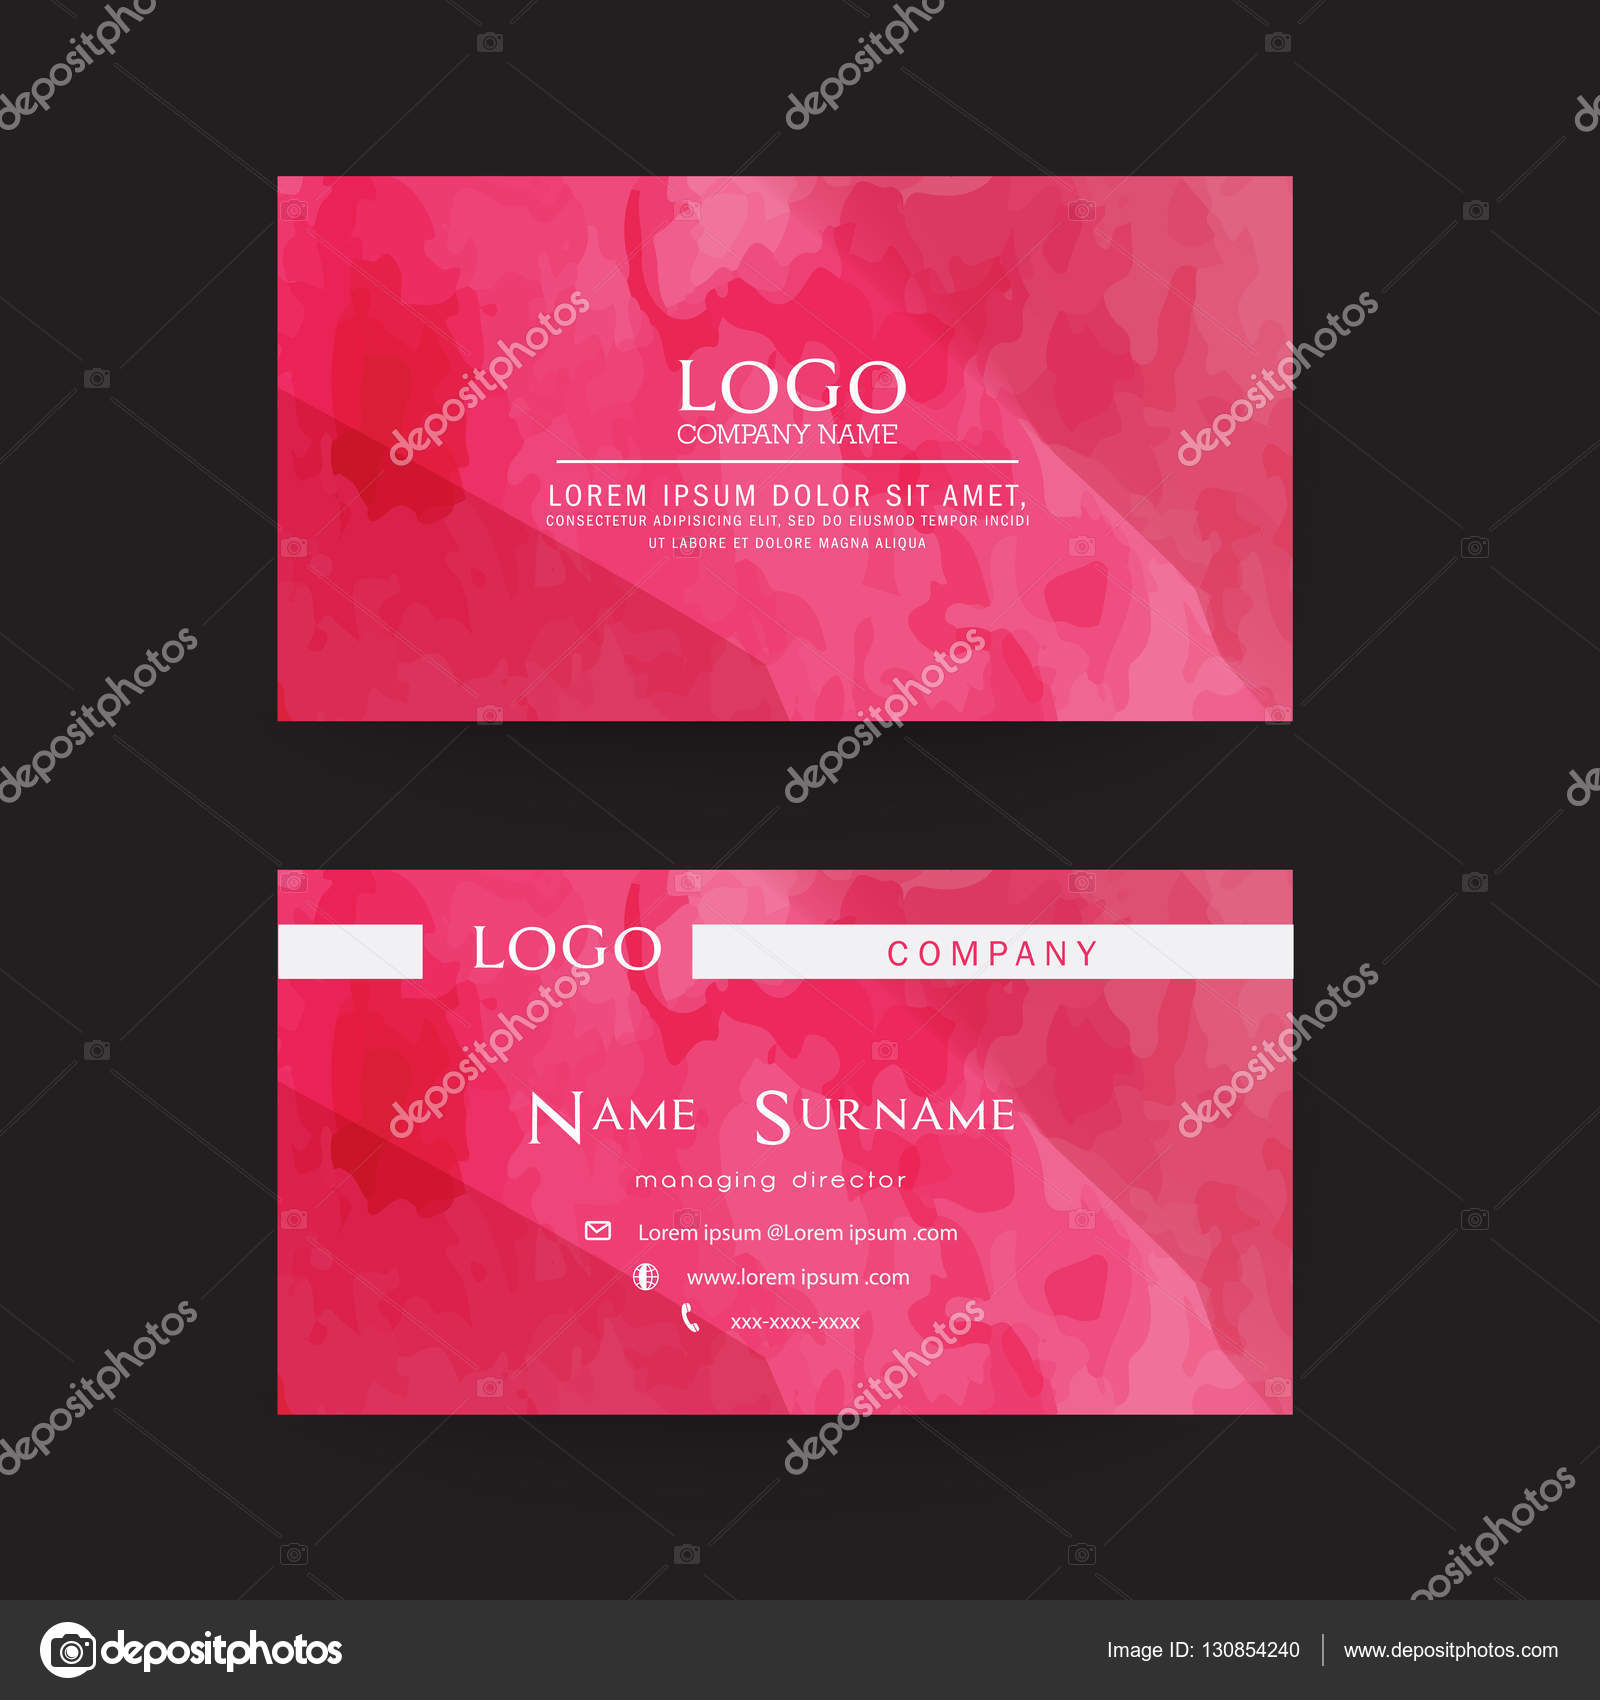 Name card modern simple business card template vector name card modern simple business card template vector illustration stock vector 130854240 colourmoves